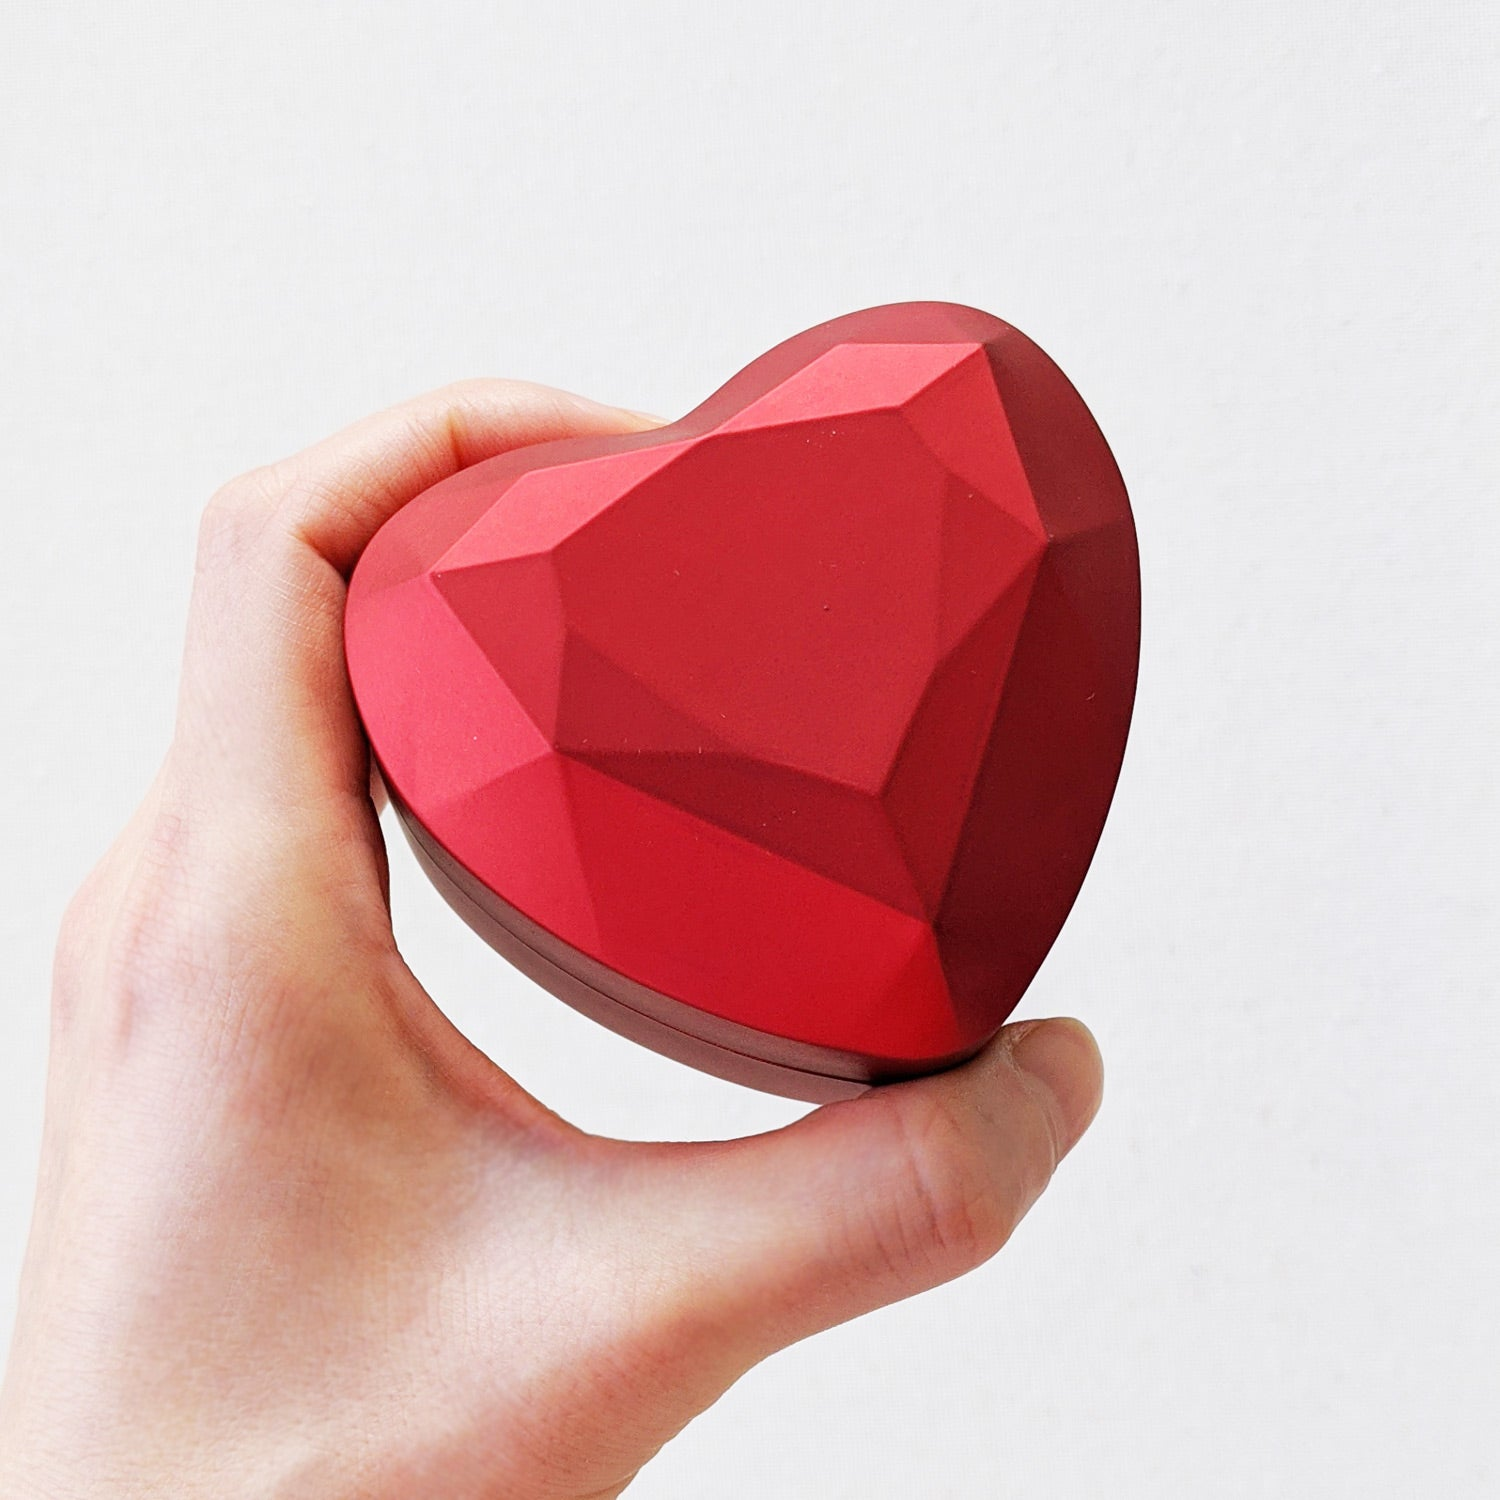 Red Heart Ring Box - Valentine's Day Gift Special - Limited Edition